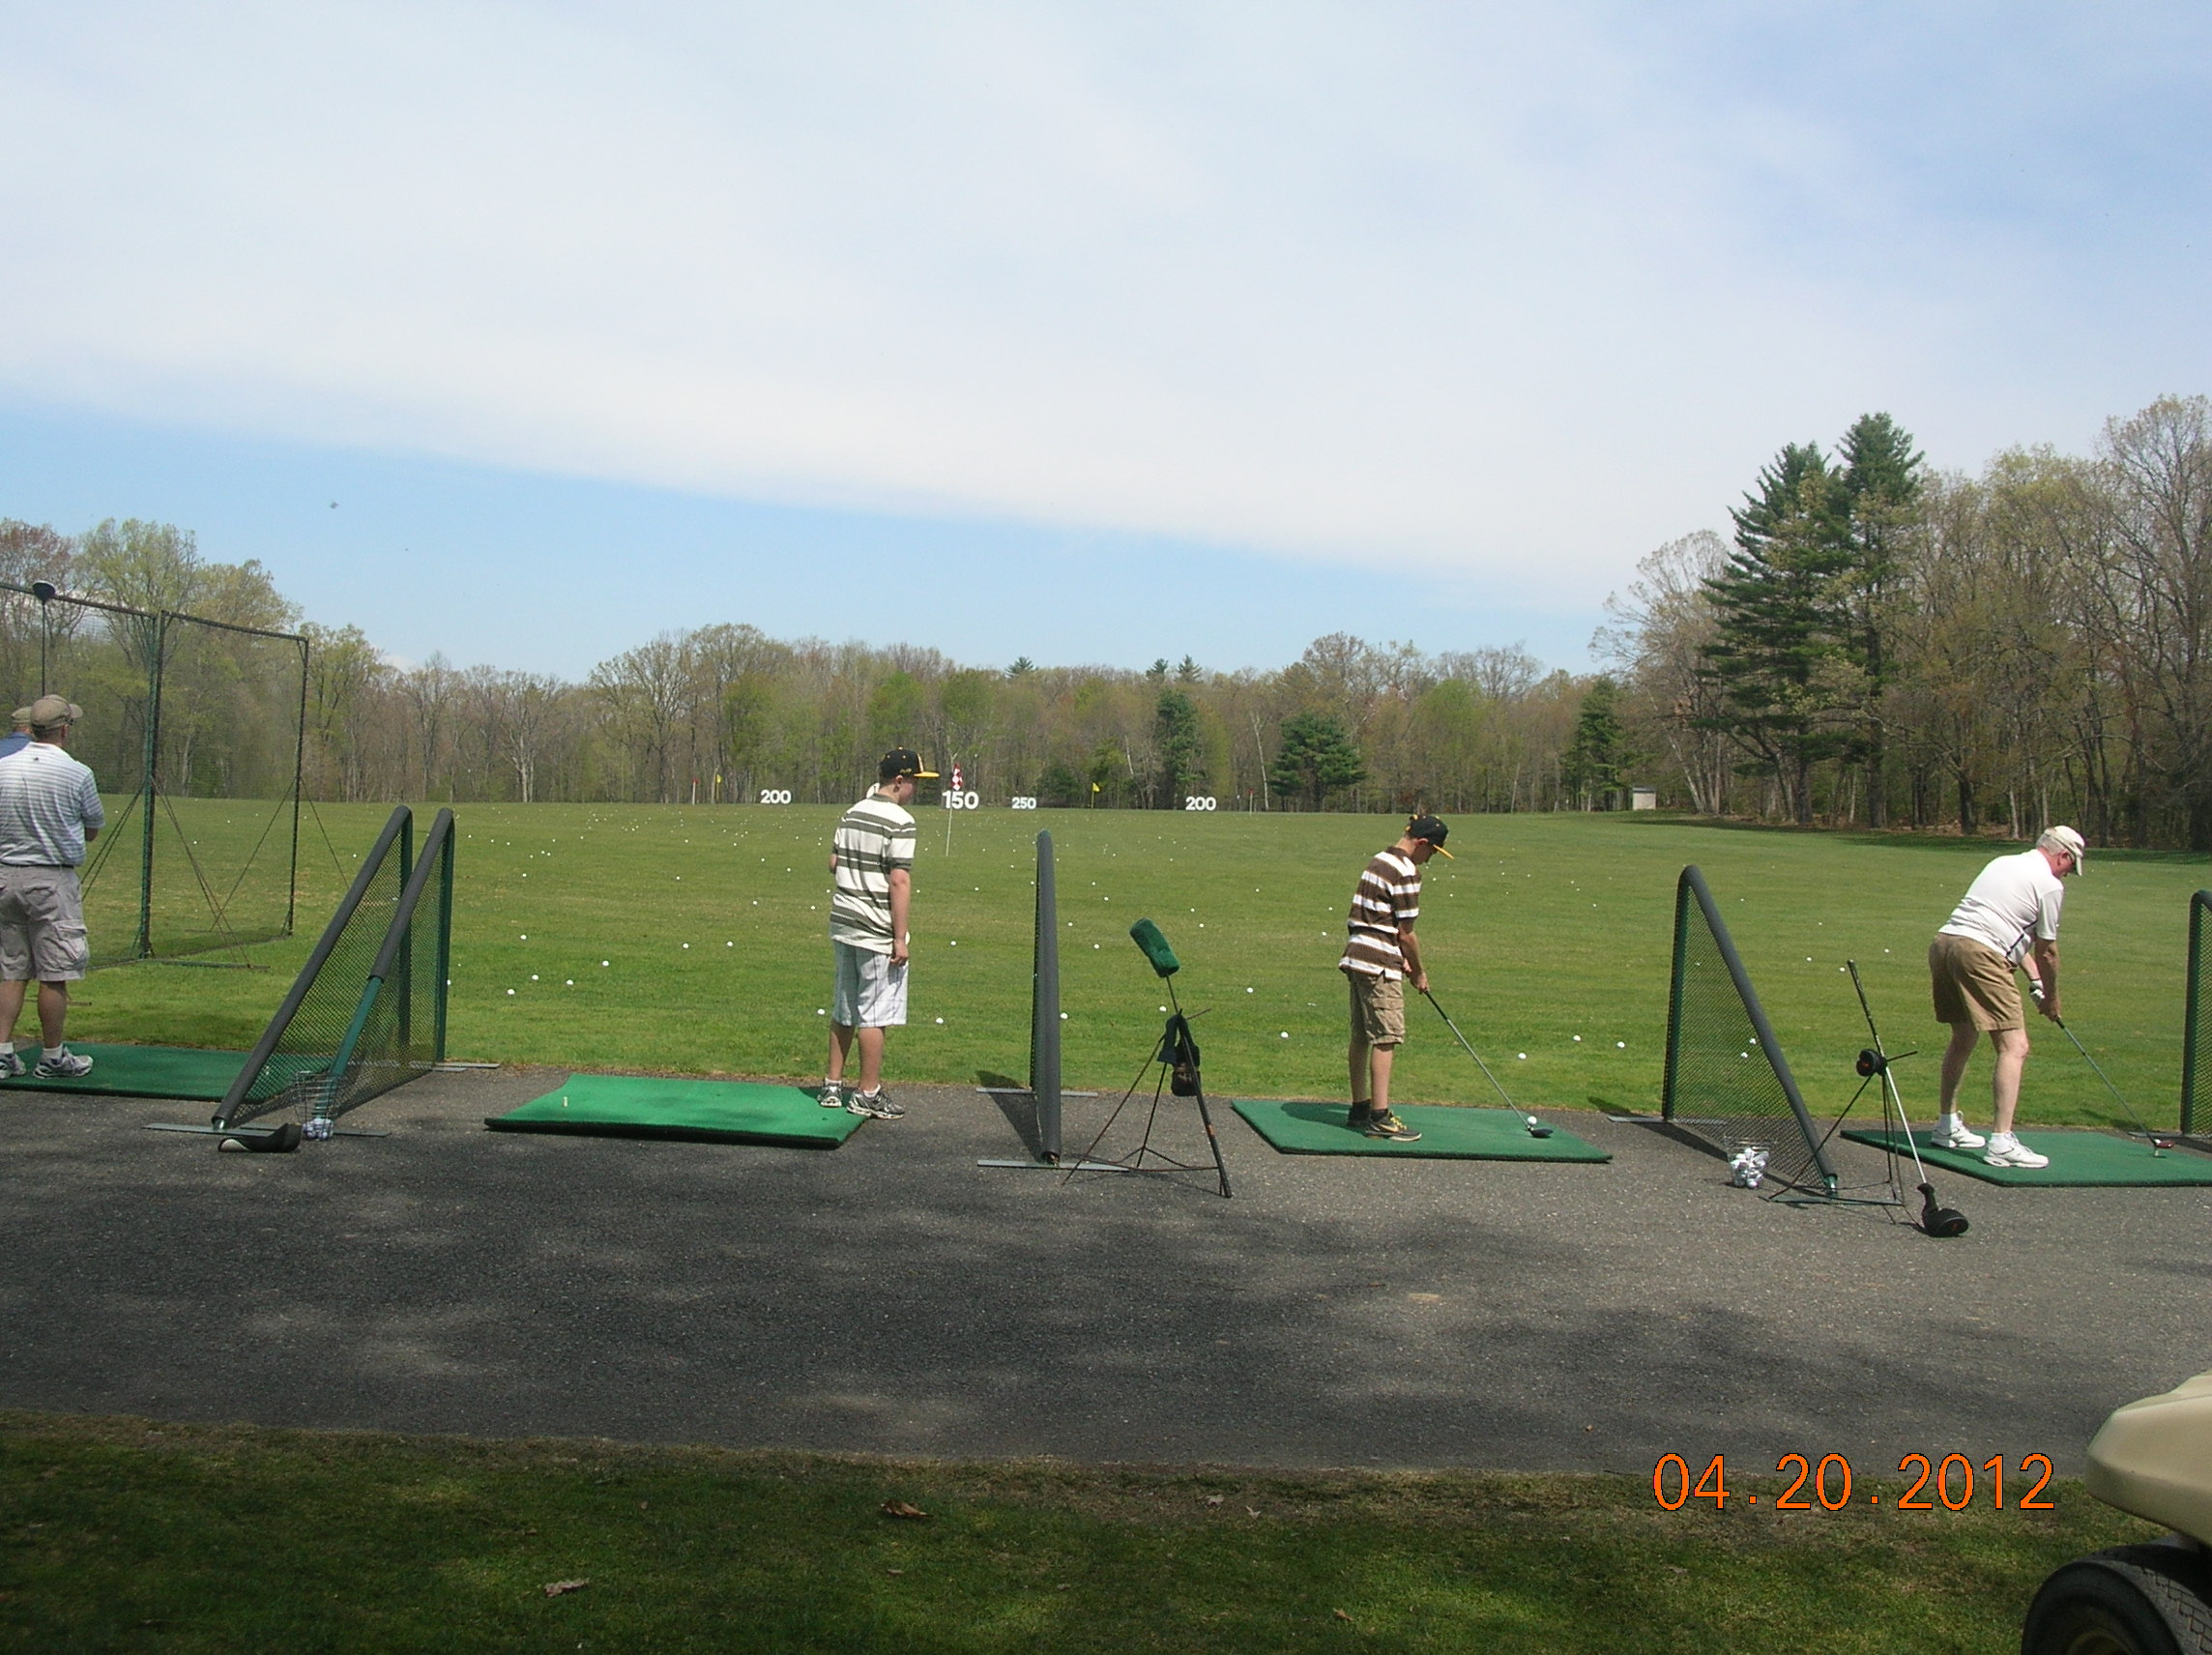 Driving range with booths and grass area to hit from.